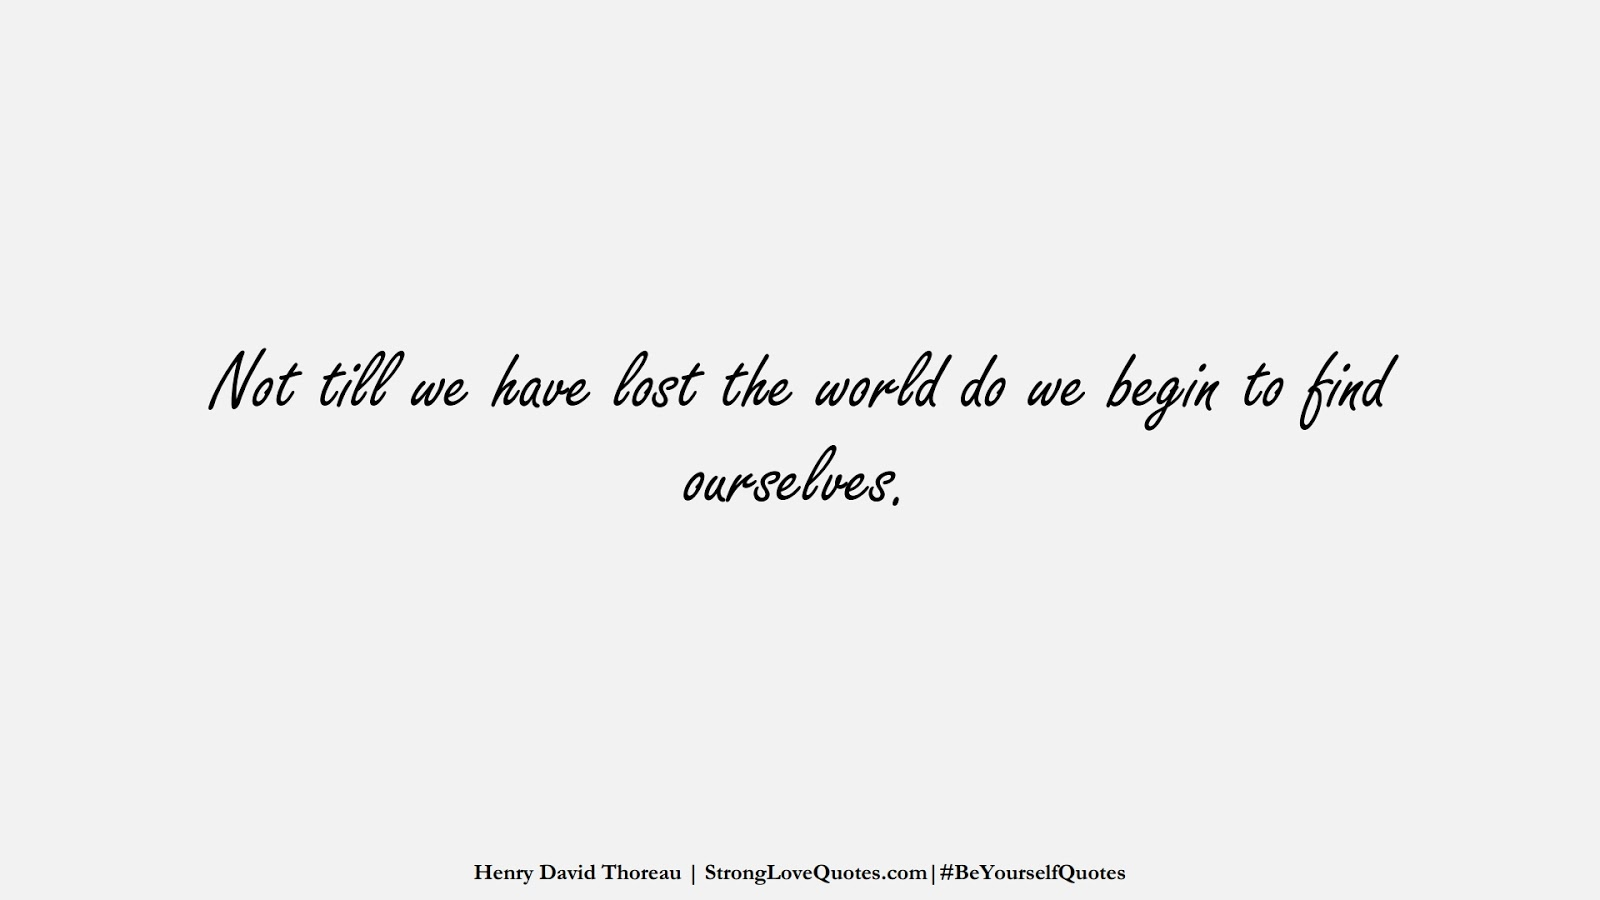 Not till we have lost the world do we begin to find ourselves. (Henry David Thoreau);  #BeYourselfQuotes